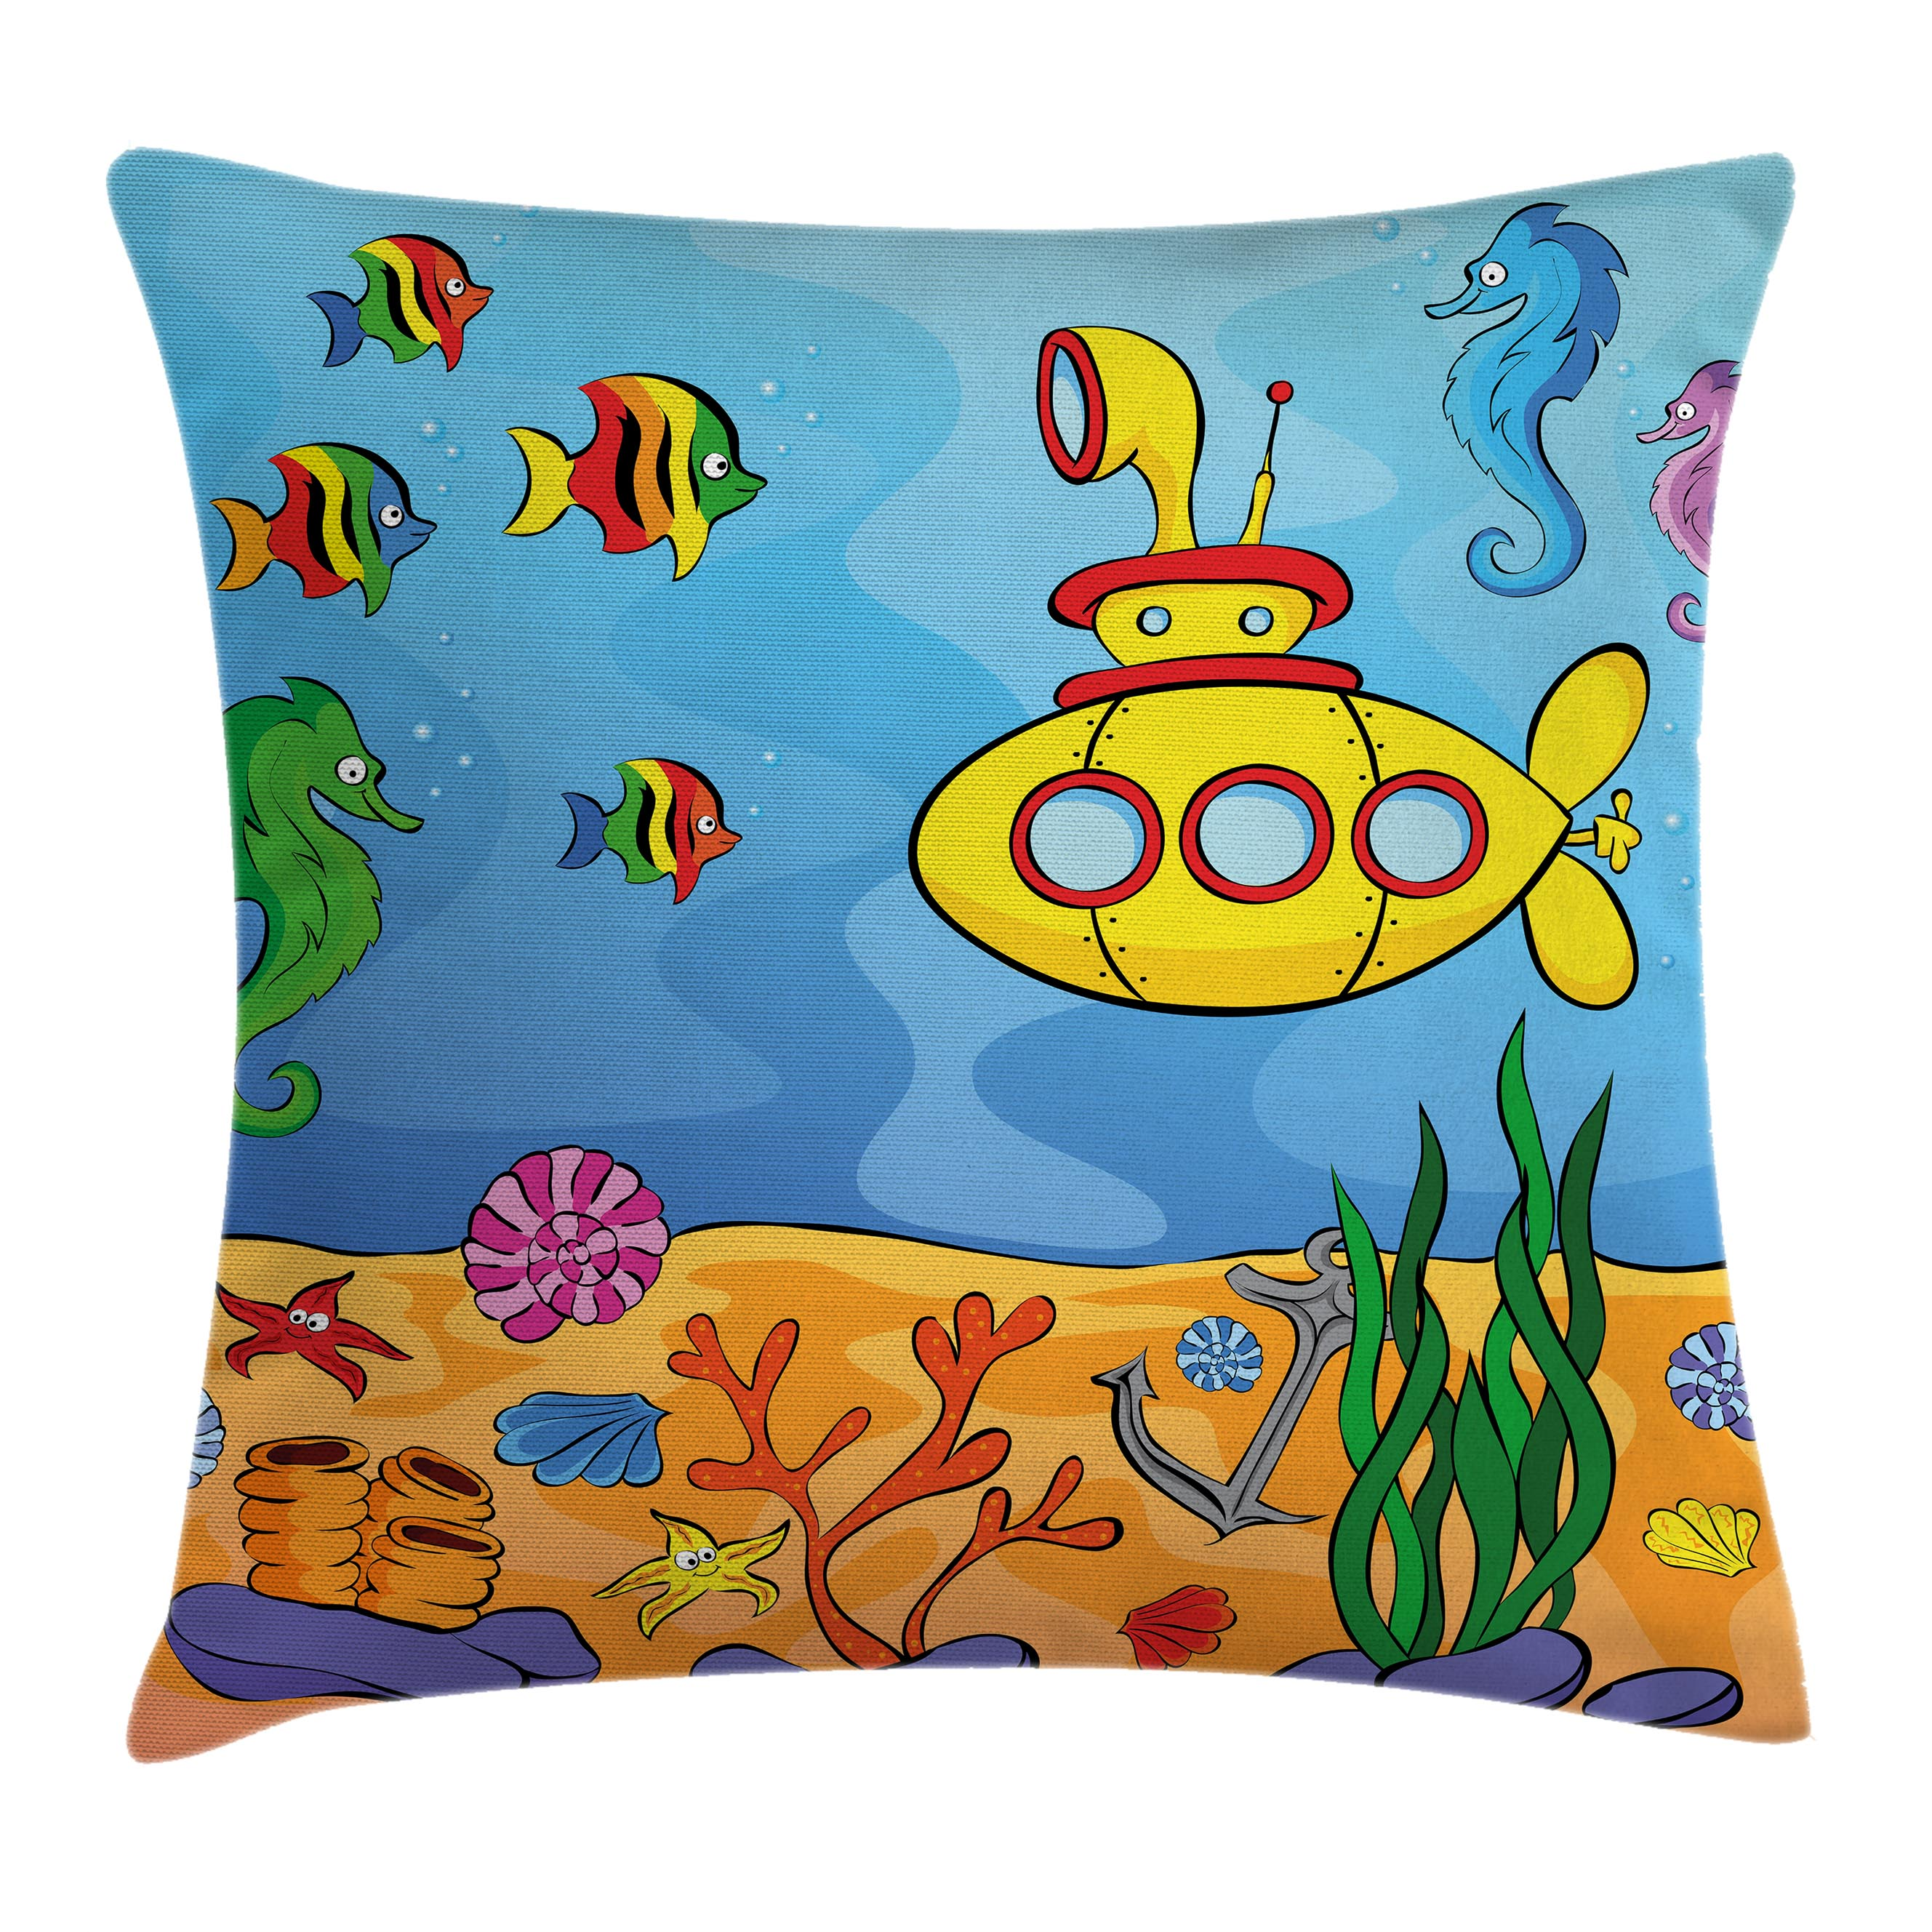 Yellow Submarine Decor Throw Pillow Cushion Cover, Underwater Theme Submarine Seahorse Starfish and Fish Print, Decorative Square Accent Pillow Case, 16 X 16 Inches, Marigold and Aqua, by Ambesonne